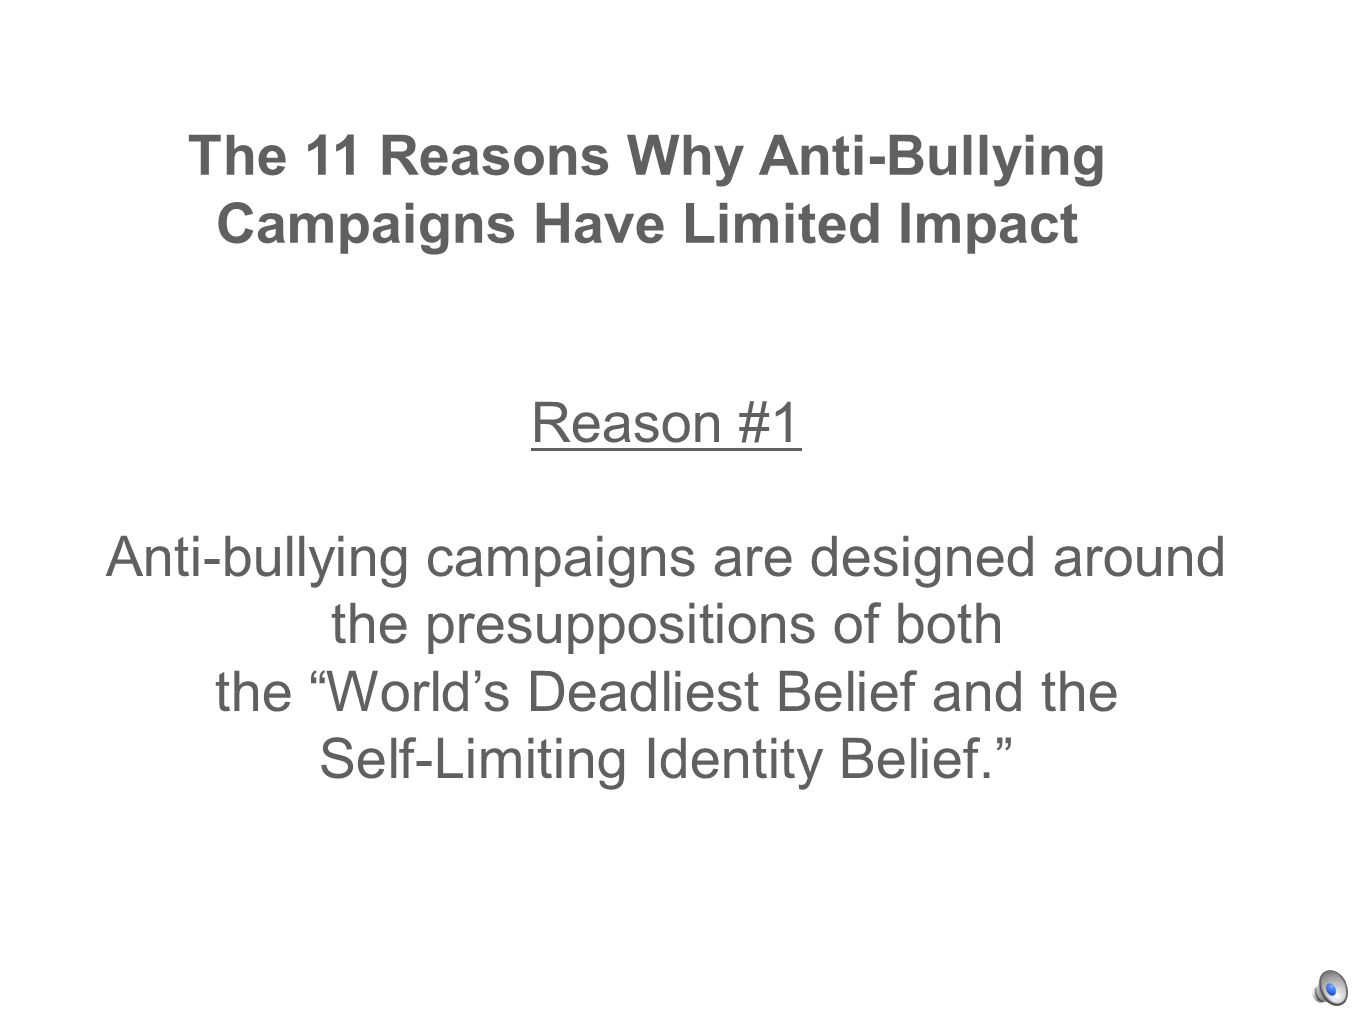 The 11 Reasons Why Anti-Bullying Campaigns Have Limited Impact Reason #1 Anti-bullying campaigns are designed around the presuppositions of both the Worlds Deadliest Belief and the Self-Limiting Identity Belief.